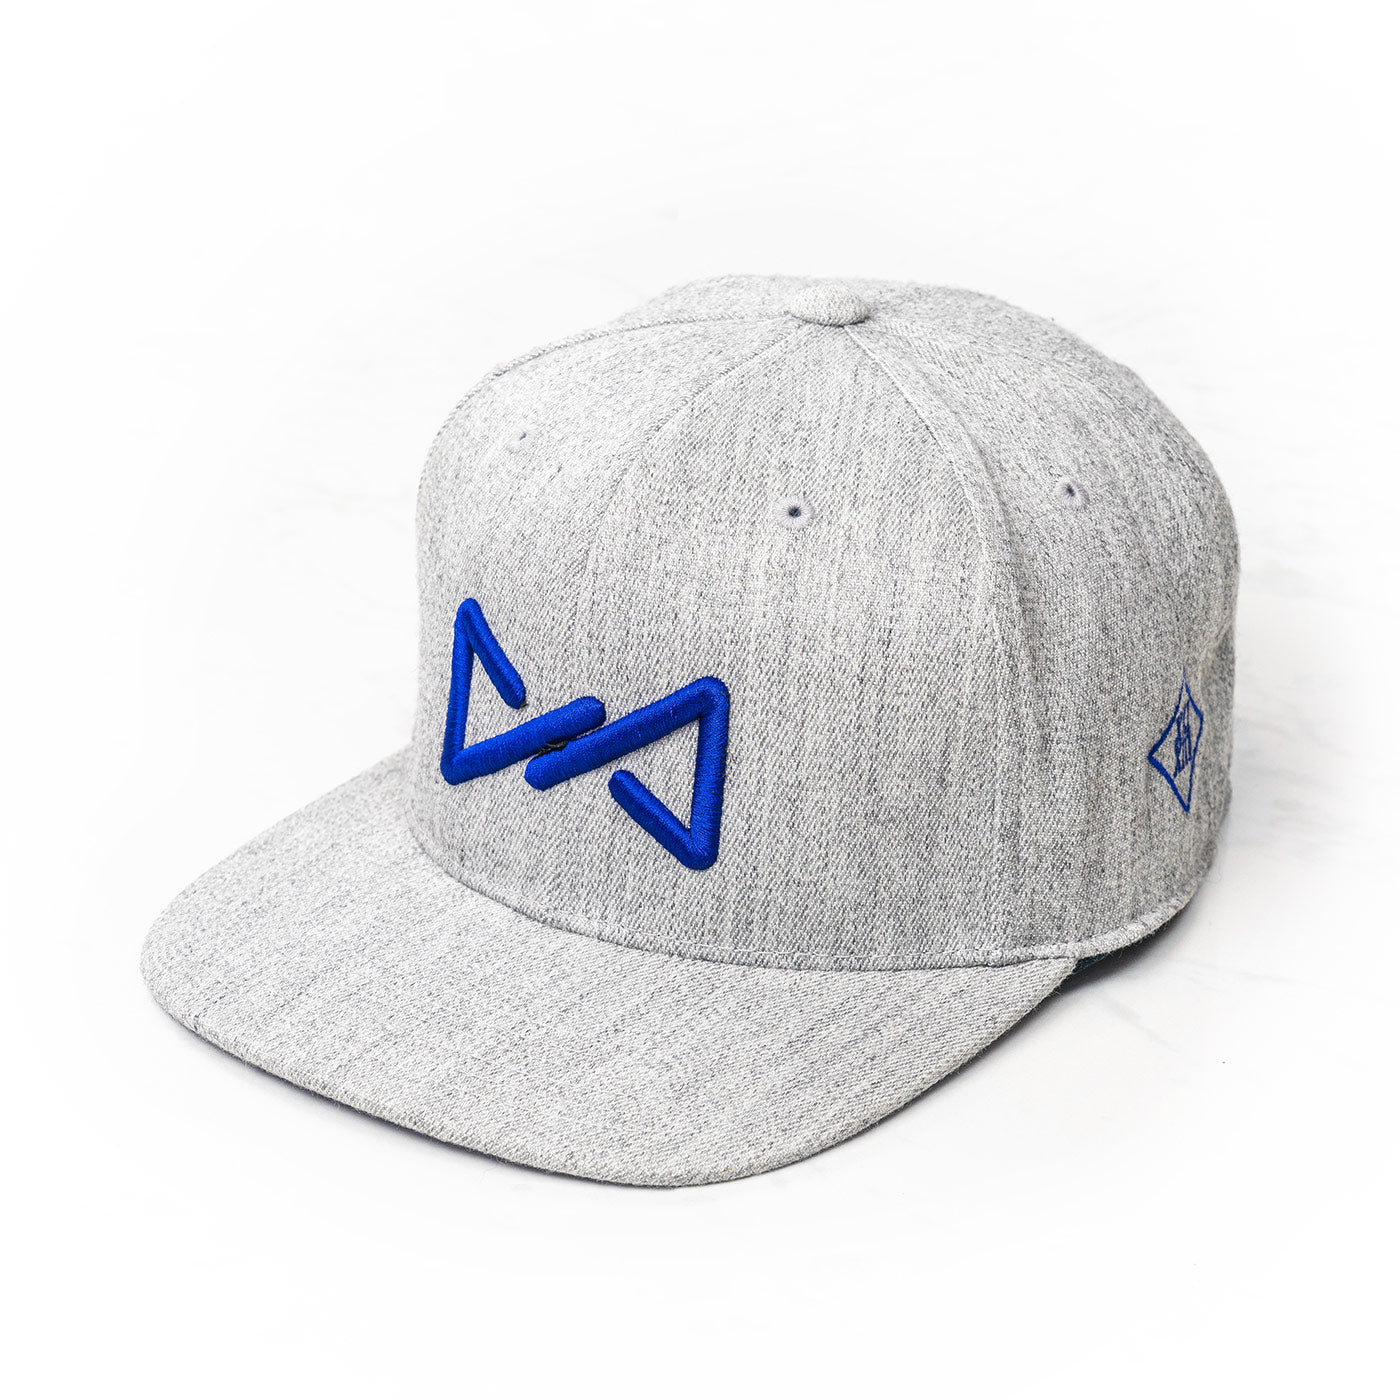 Classic snapback blue on grey